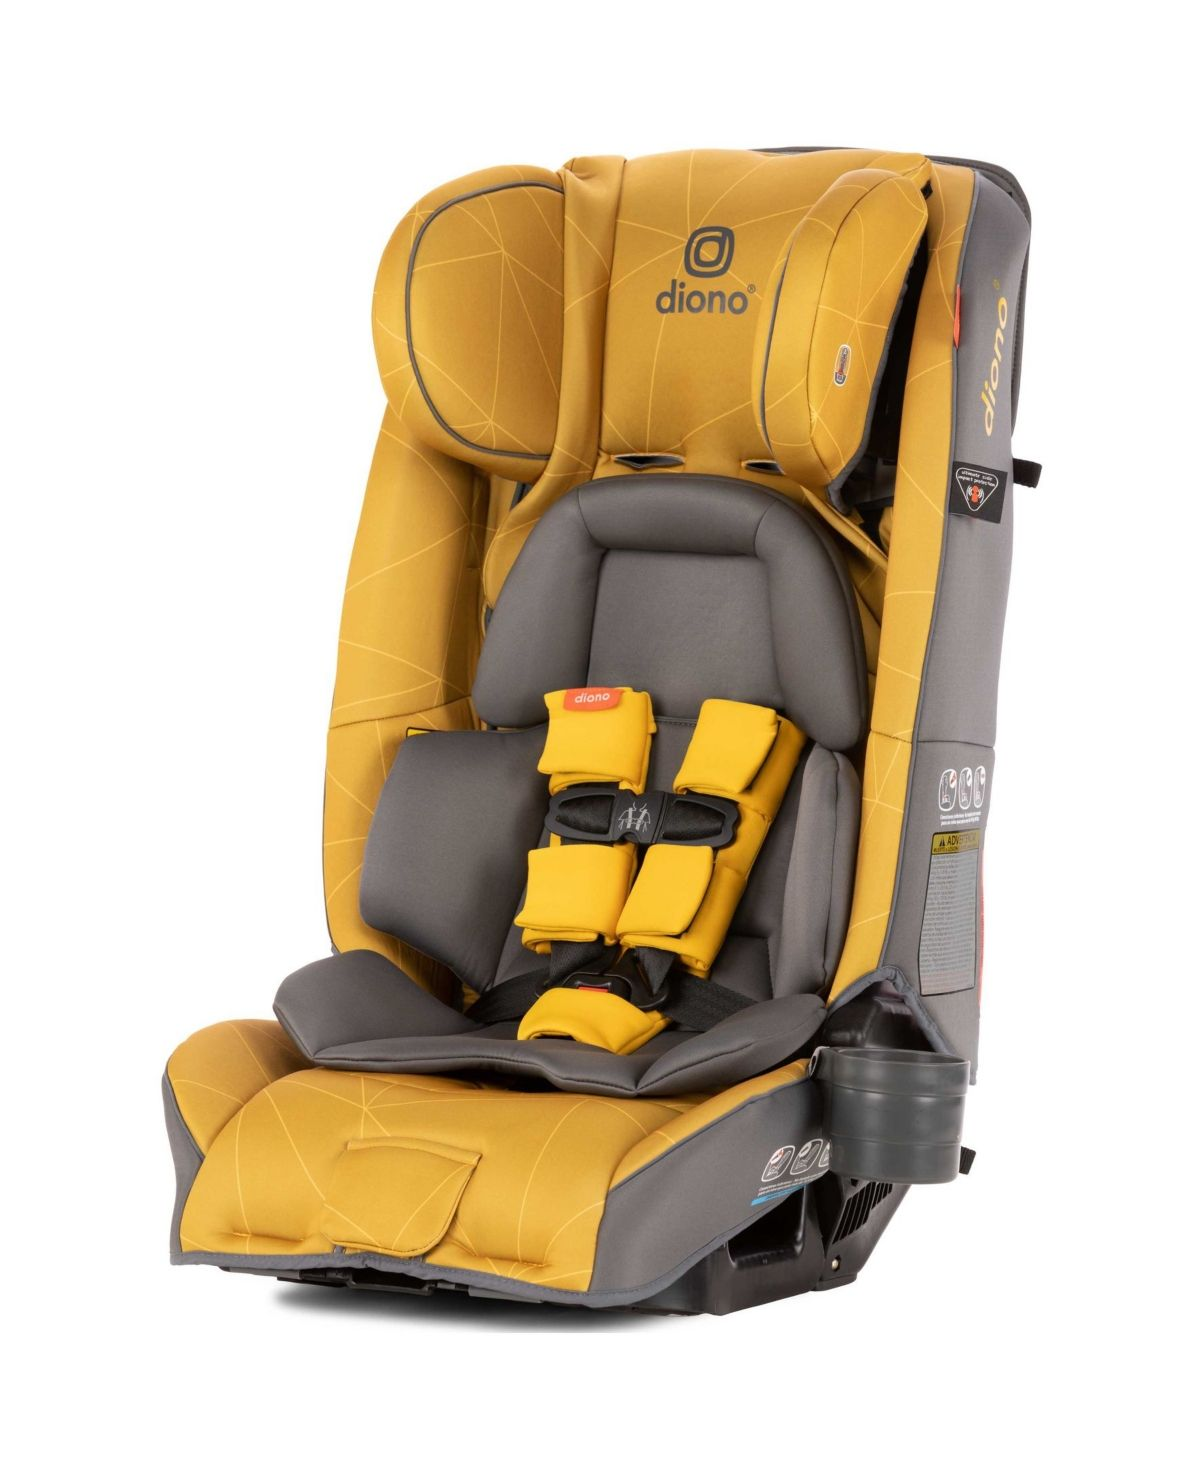 Diono Radian 3 RXT AllInOne Convertible Car Seat and